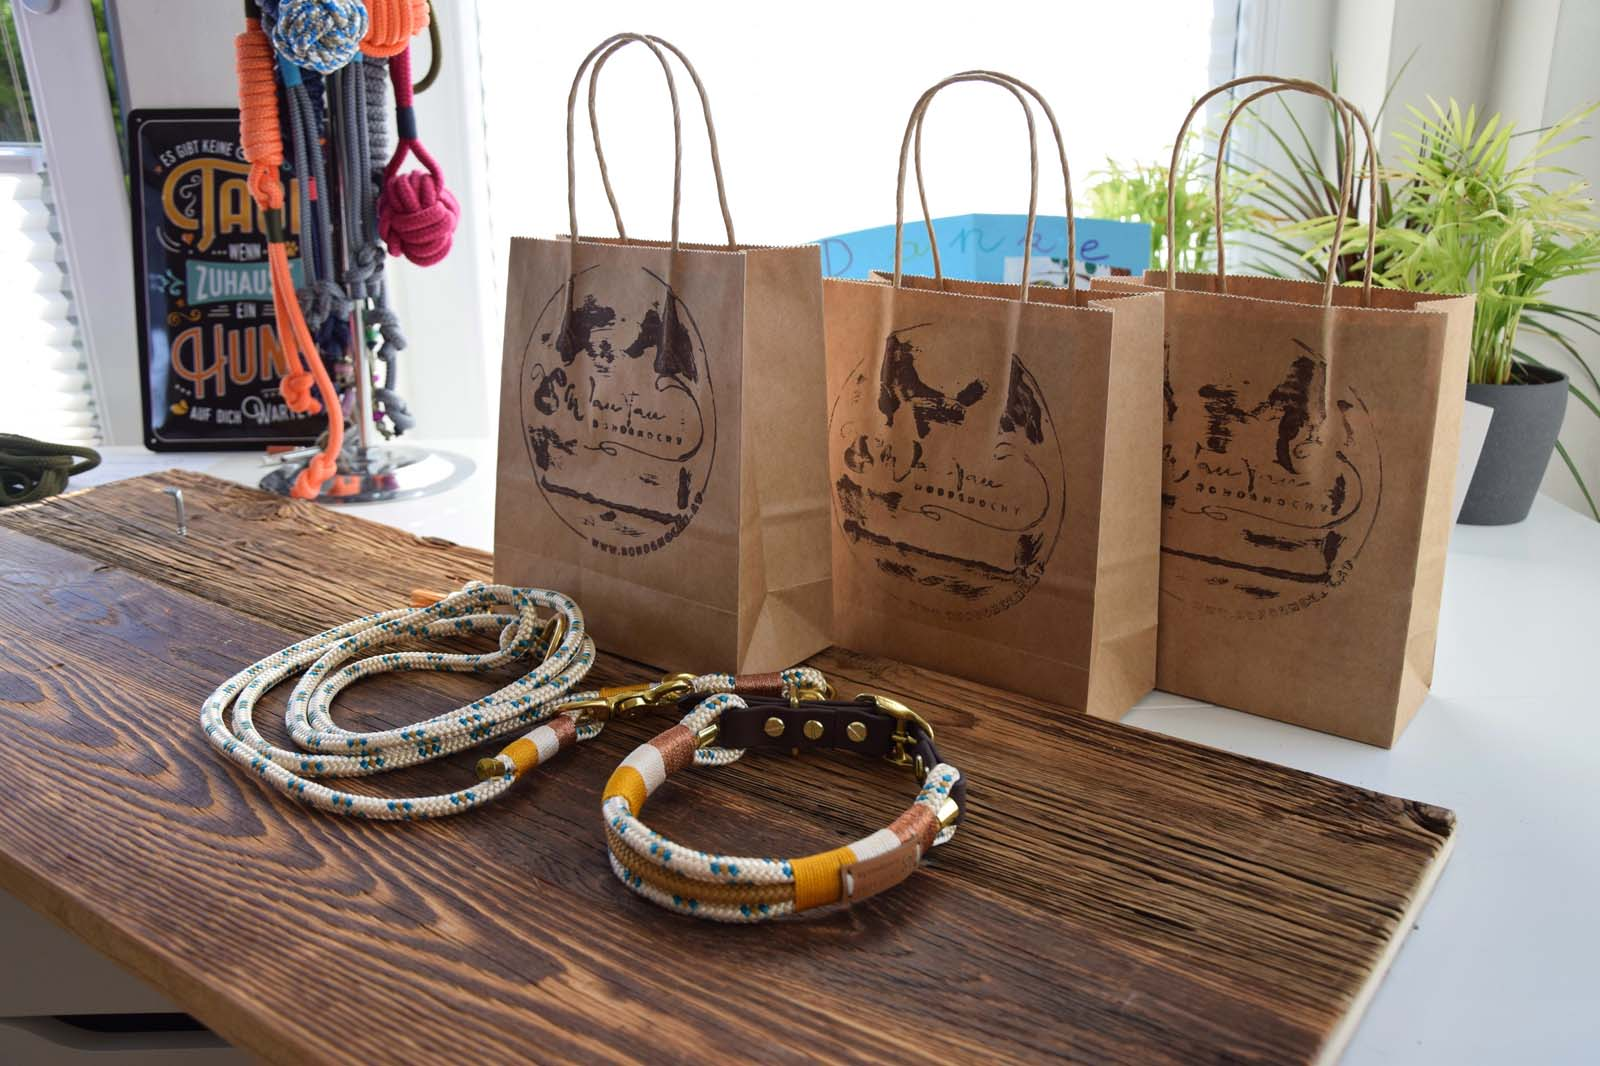 Homemade bracelets, necklaces, bags from Eben